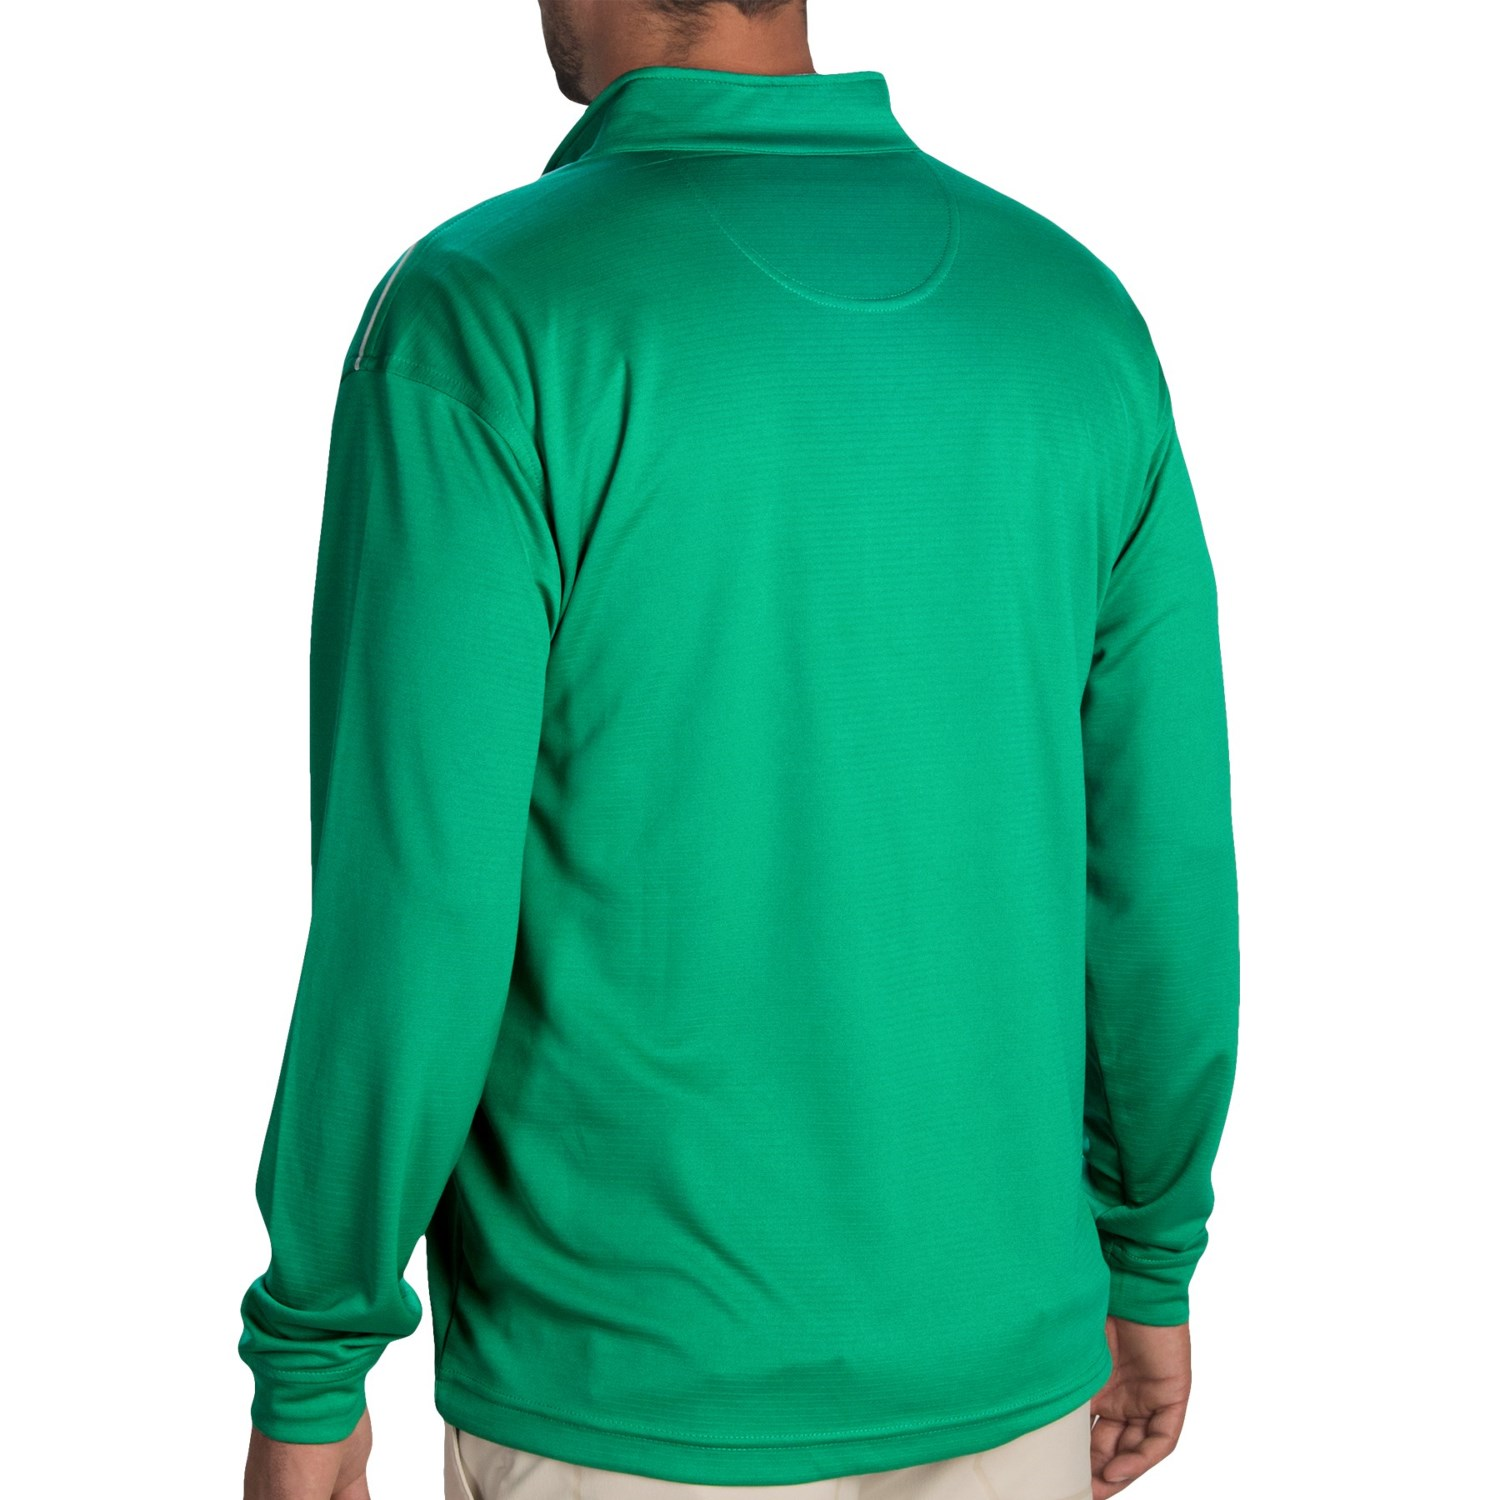 Moisture wicking golf shirt for men 9093t save 73 for Moisture wicking golf shirts